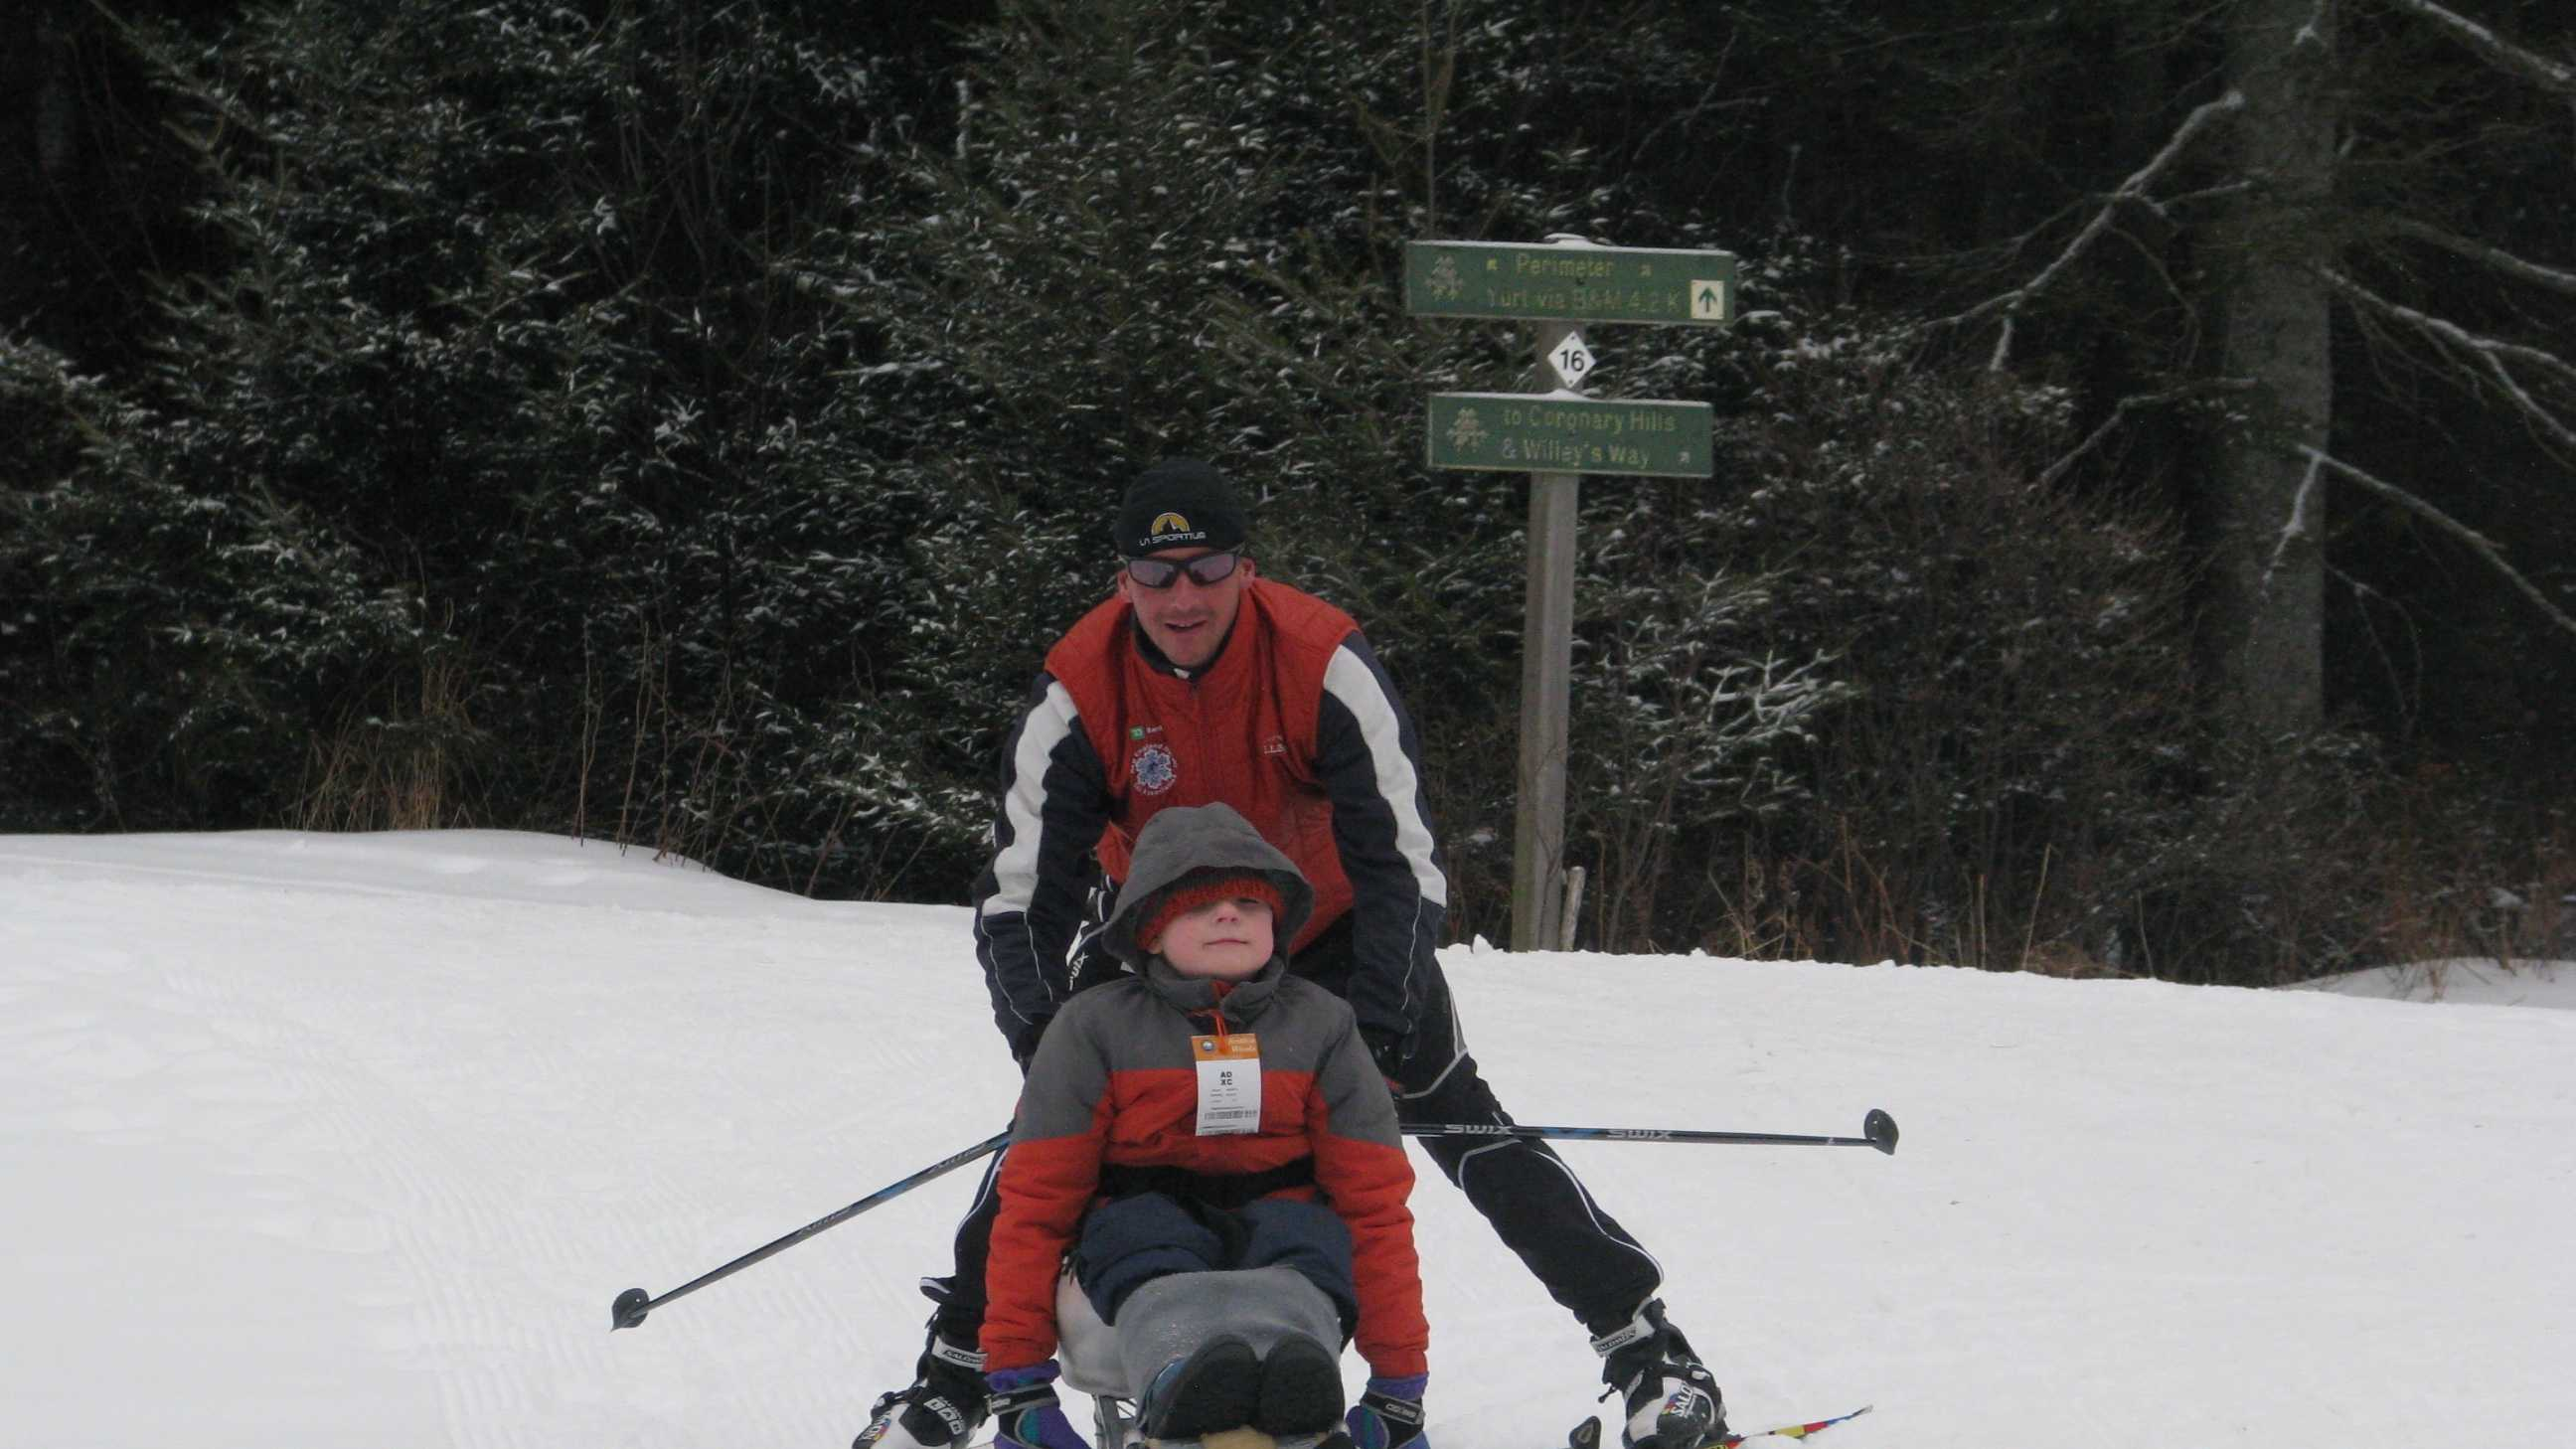 Lewis Bellows, 9, of East Kingston learns how to cross country ski in a sit ski with  instructor Patrik Viljanen, adaptive program manager for the New England Nordic Ski Association at Bretton Woods.